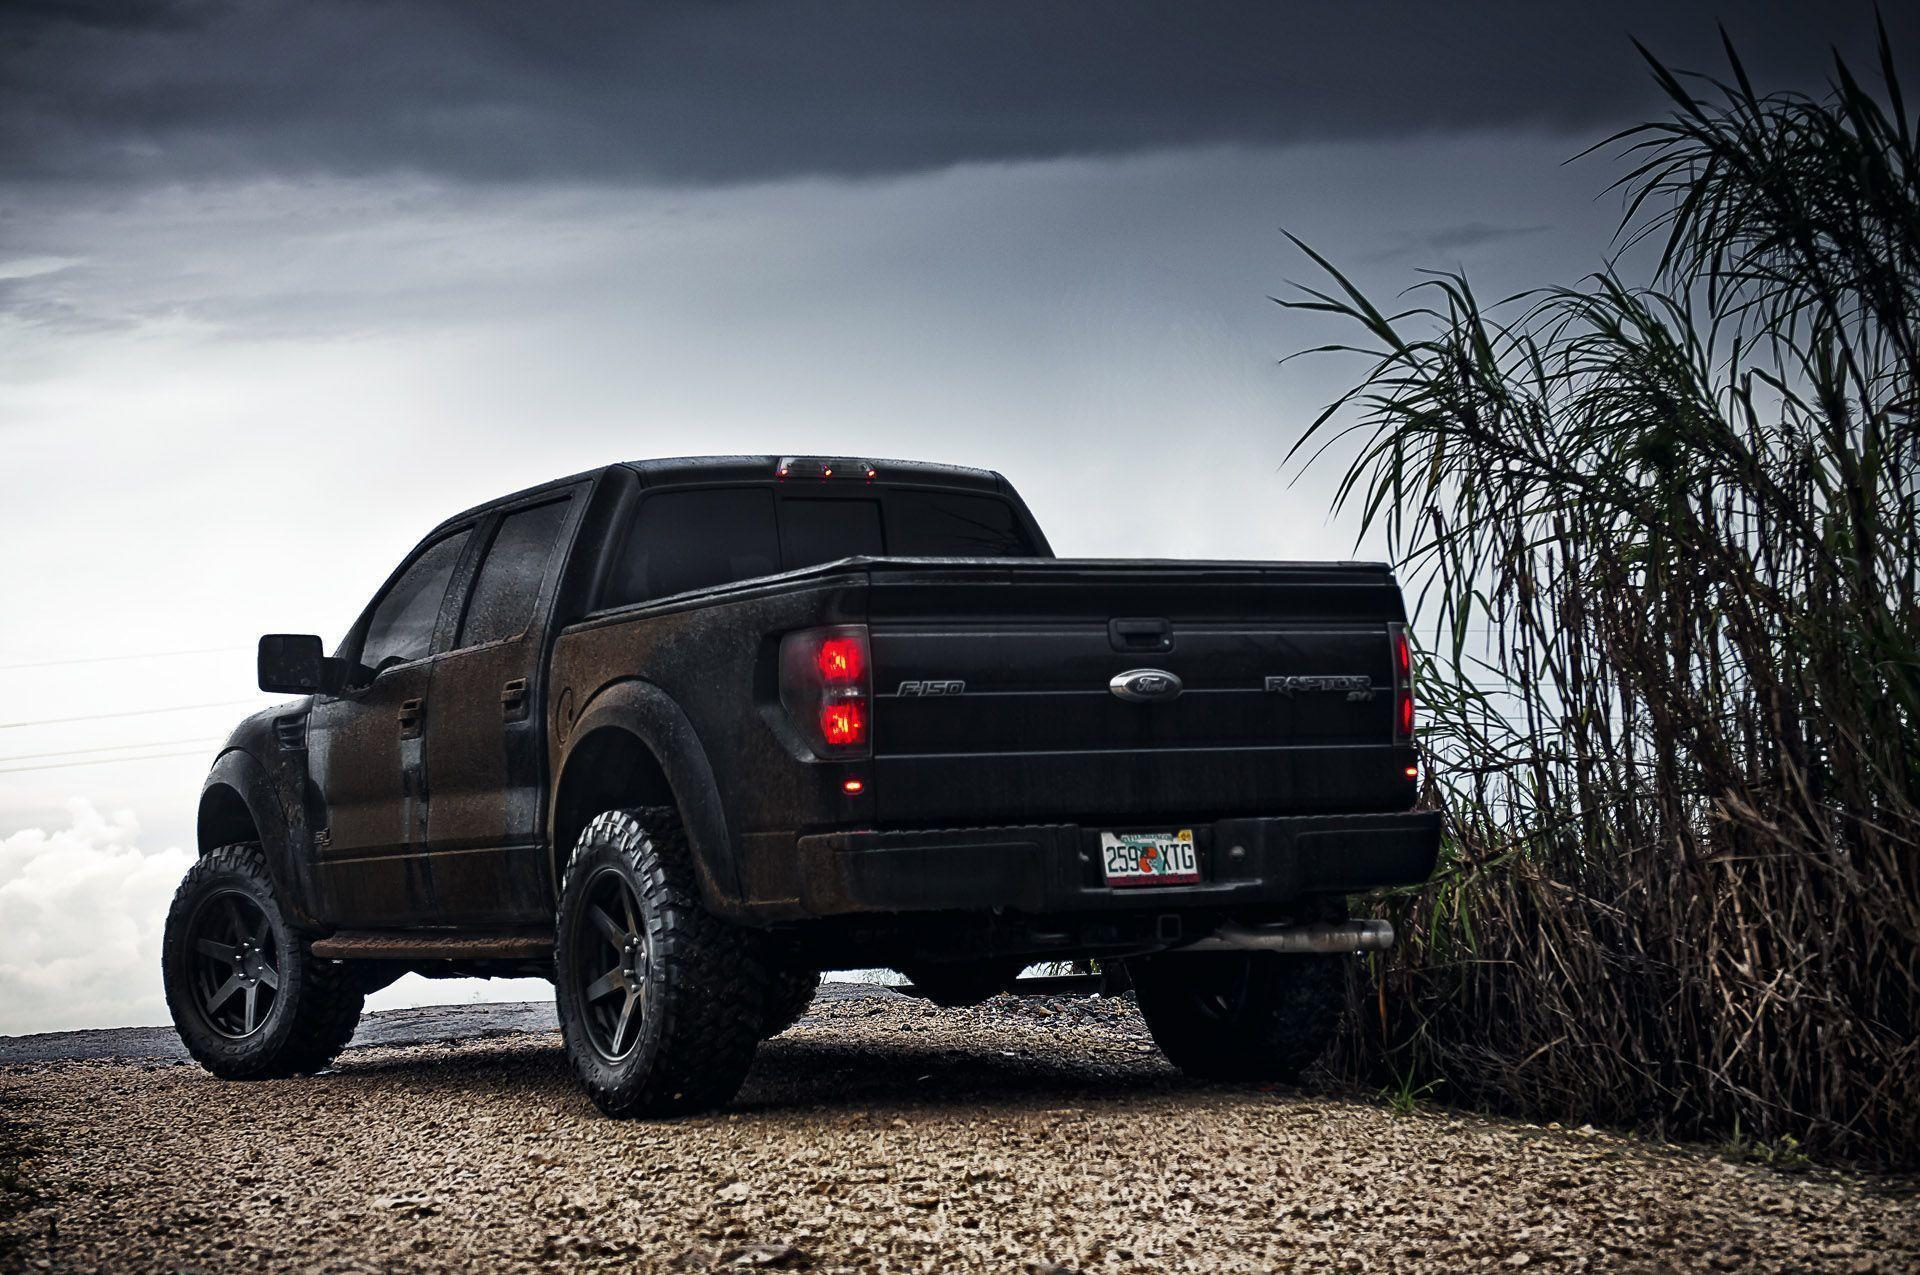 wallpaper ford raptor - photo #17